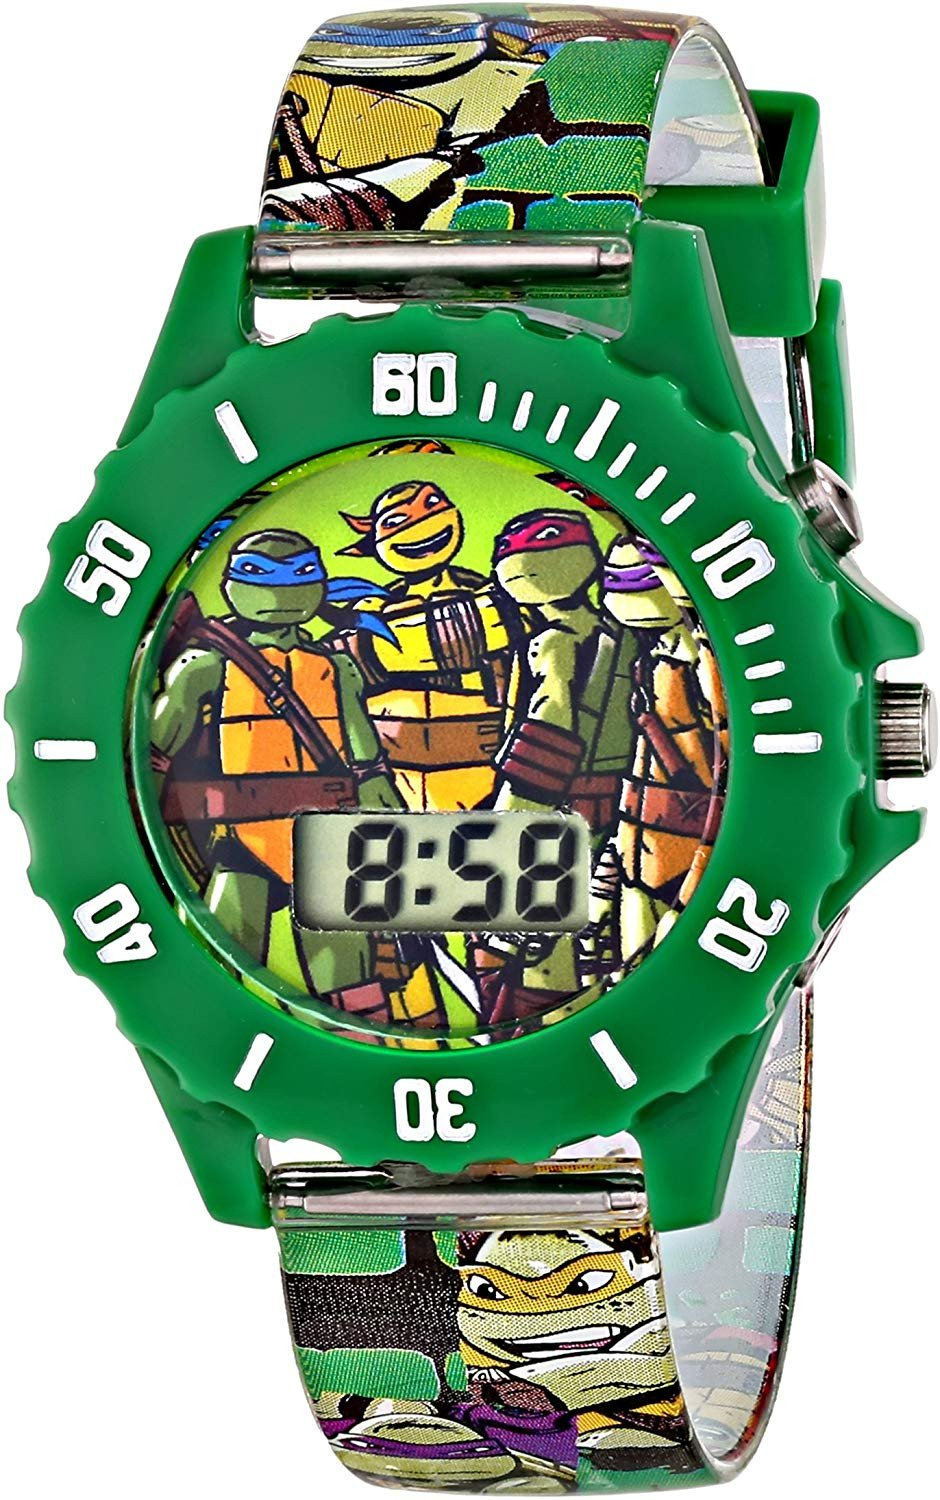 Ninja Turtles Bedroom Ideas Awesome Amazon Ninja Turtles Kids Digital Watch with Green